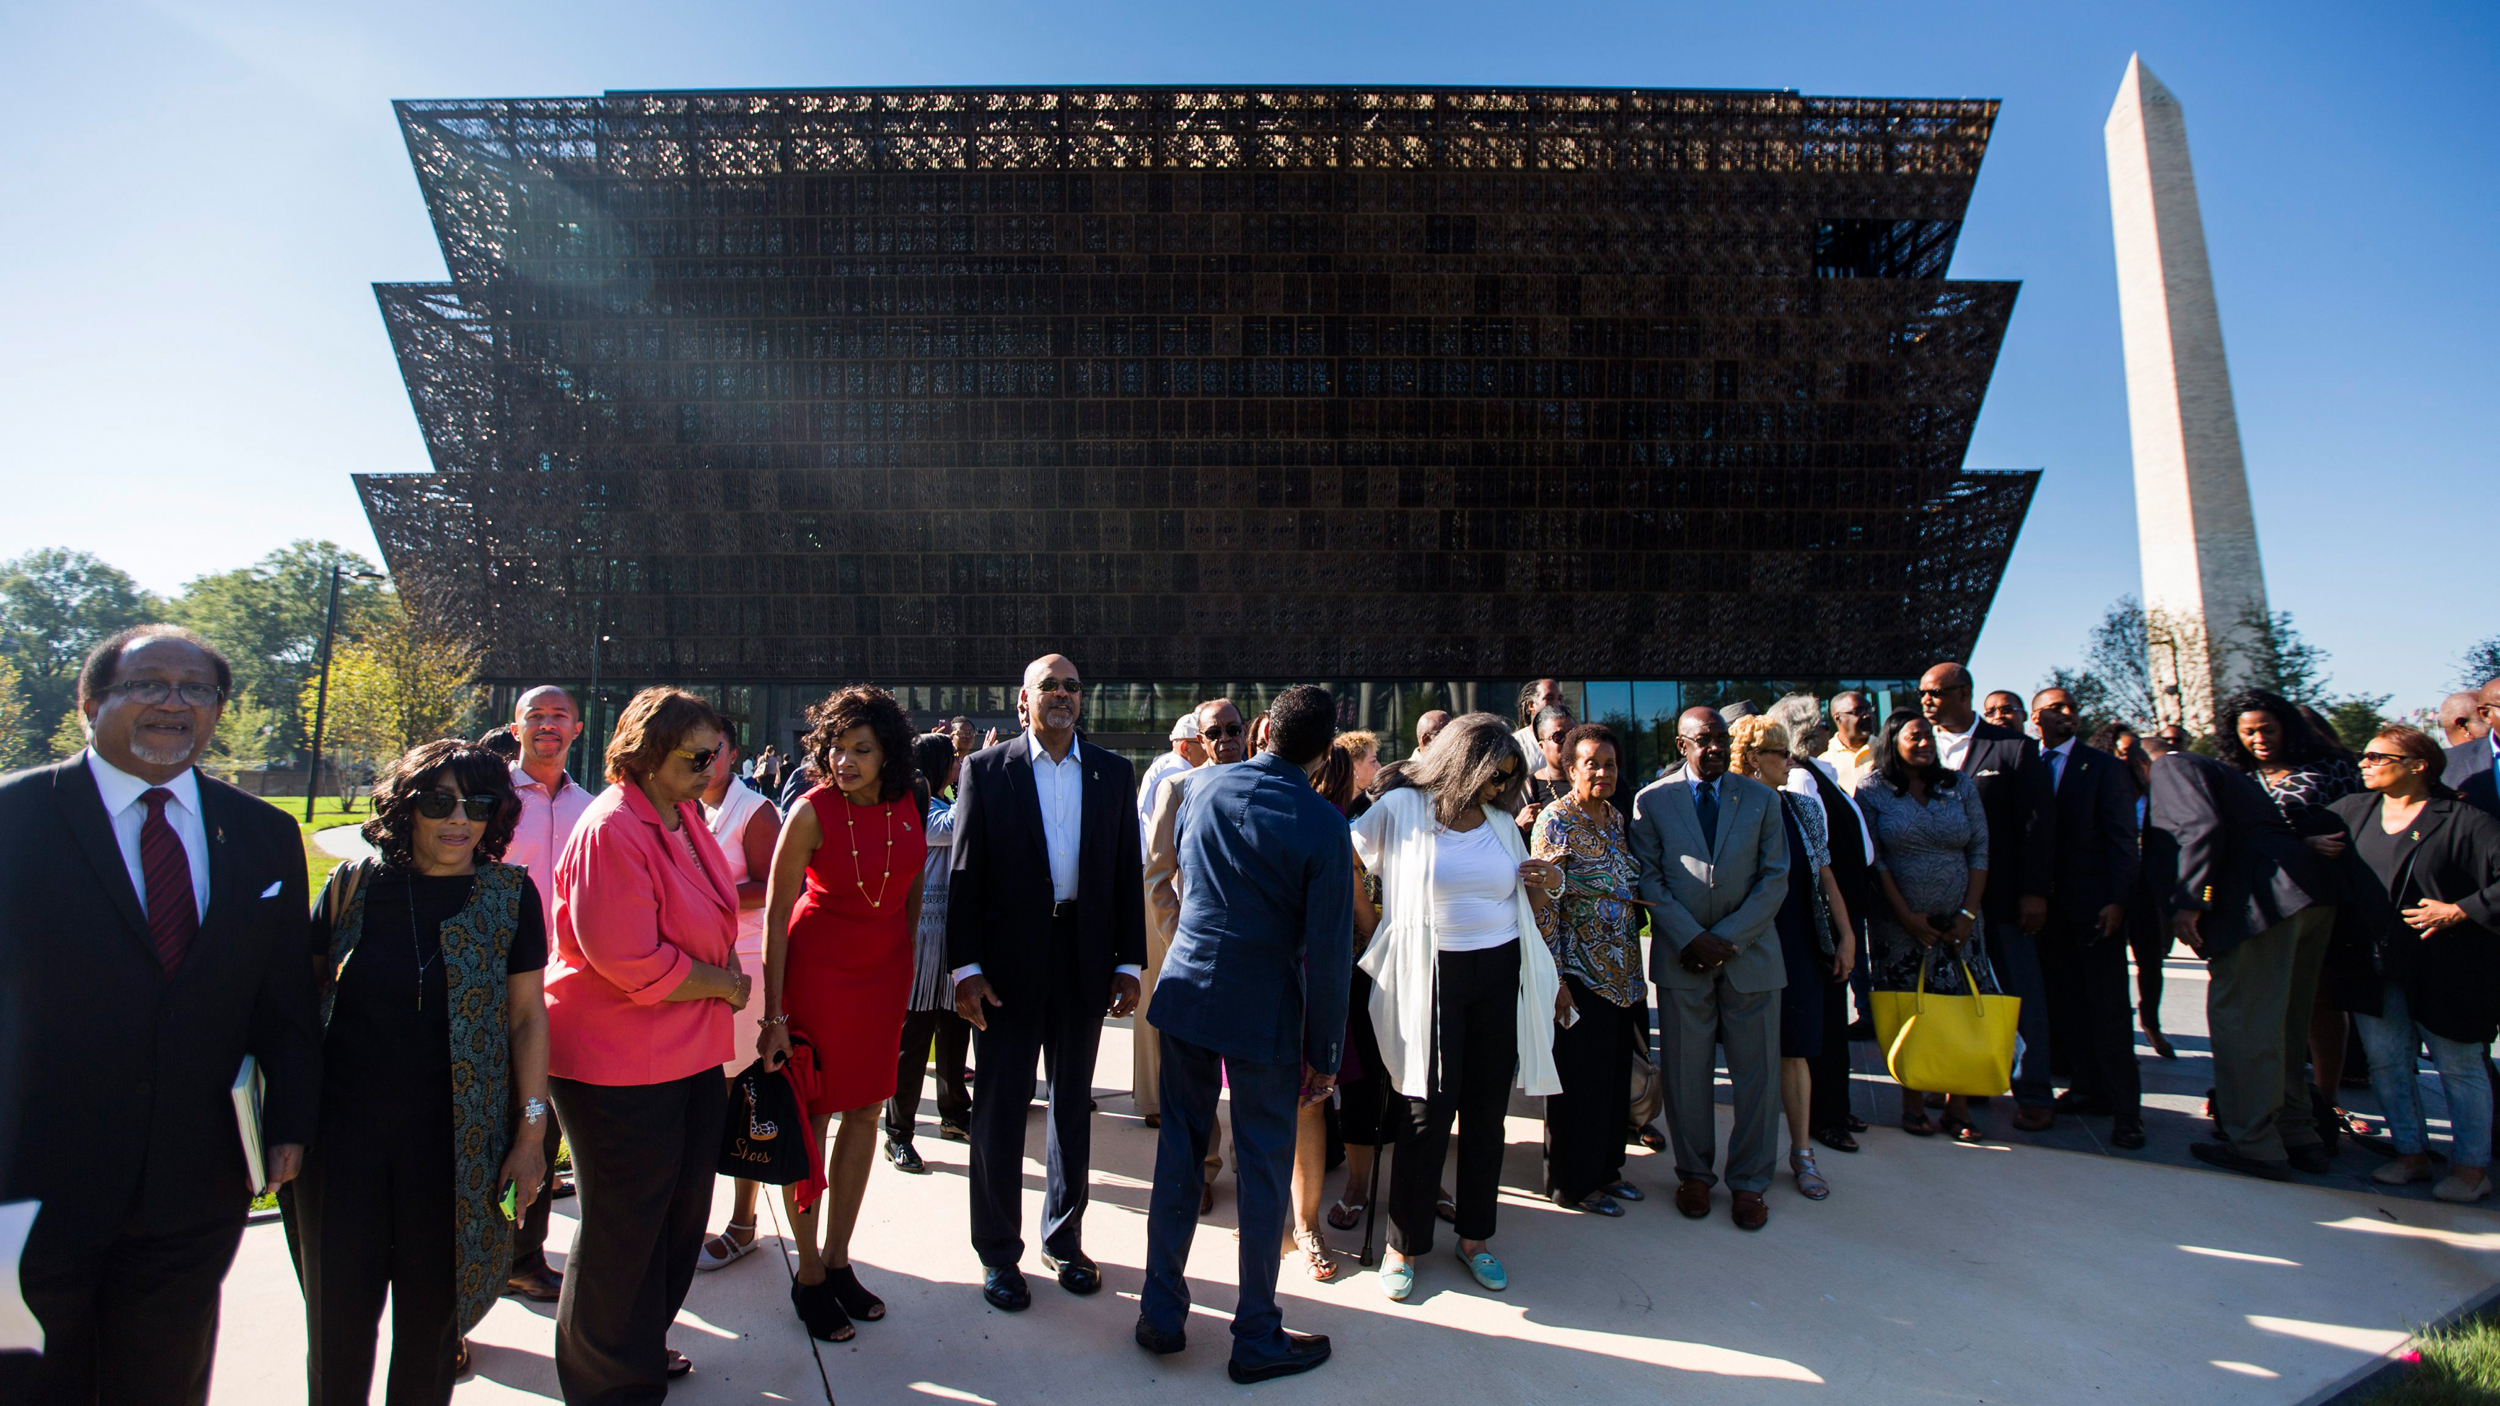 Media Preview at African American History Museum